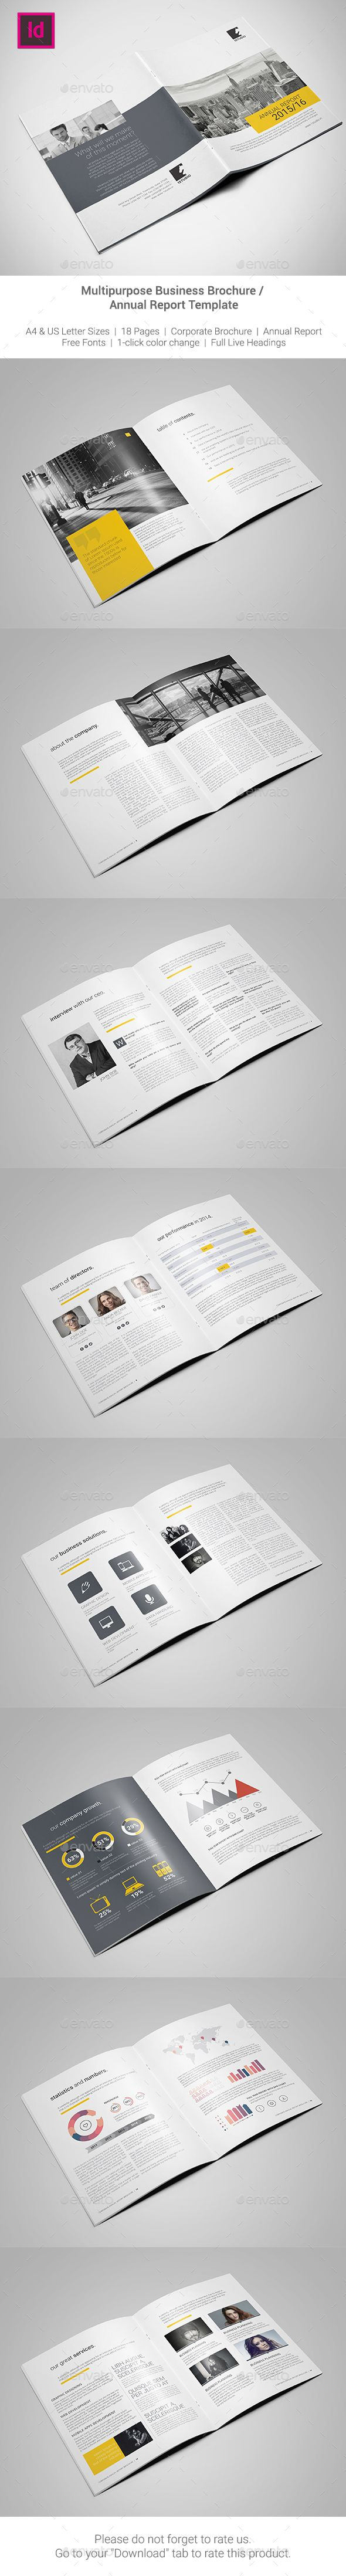 Corporate Brochure / Annual Report Template InDesign INDD #design Download: http://graphicriver.net/item/corporate-brochure-annual-report-template-/13437801?ref=ksioks